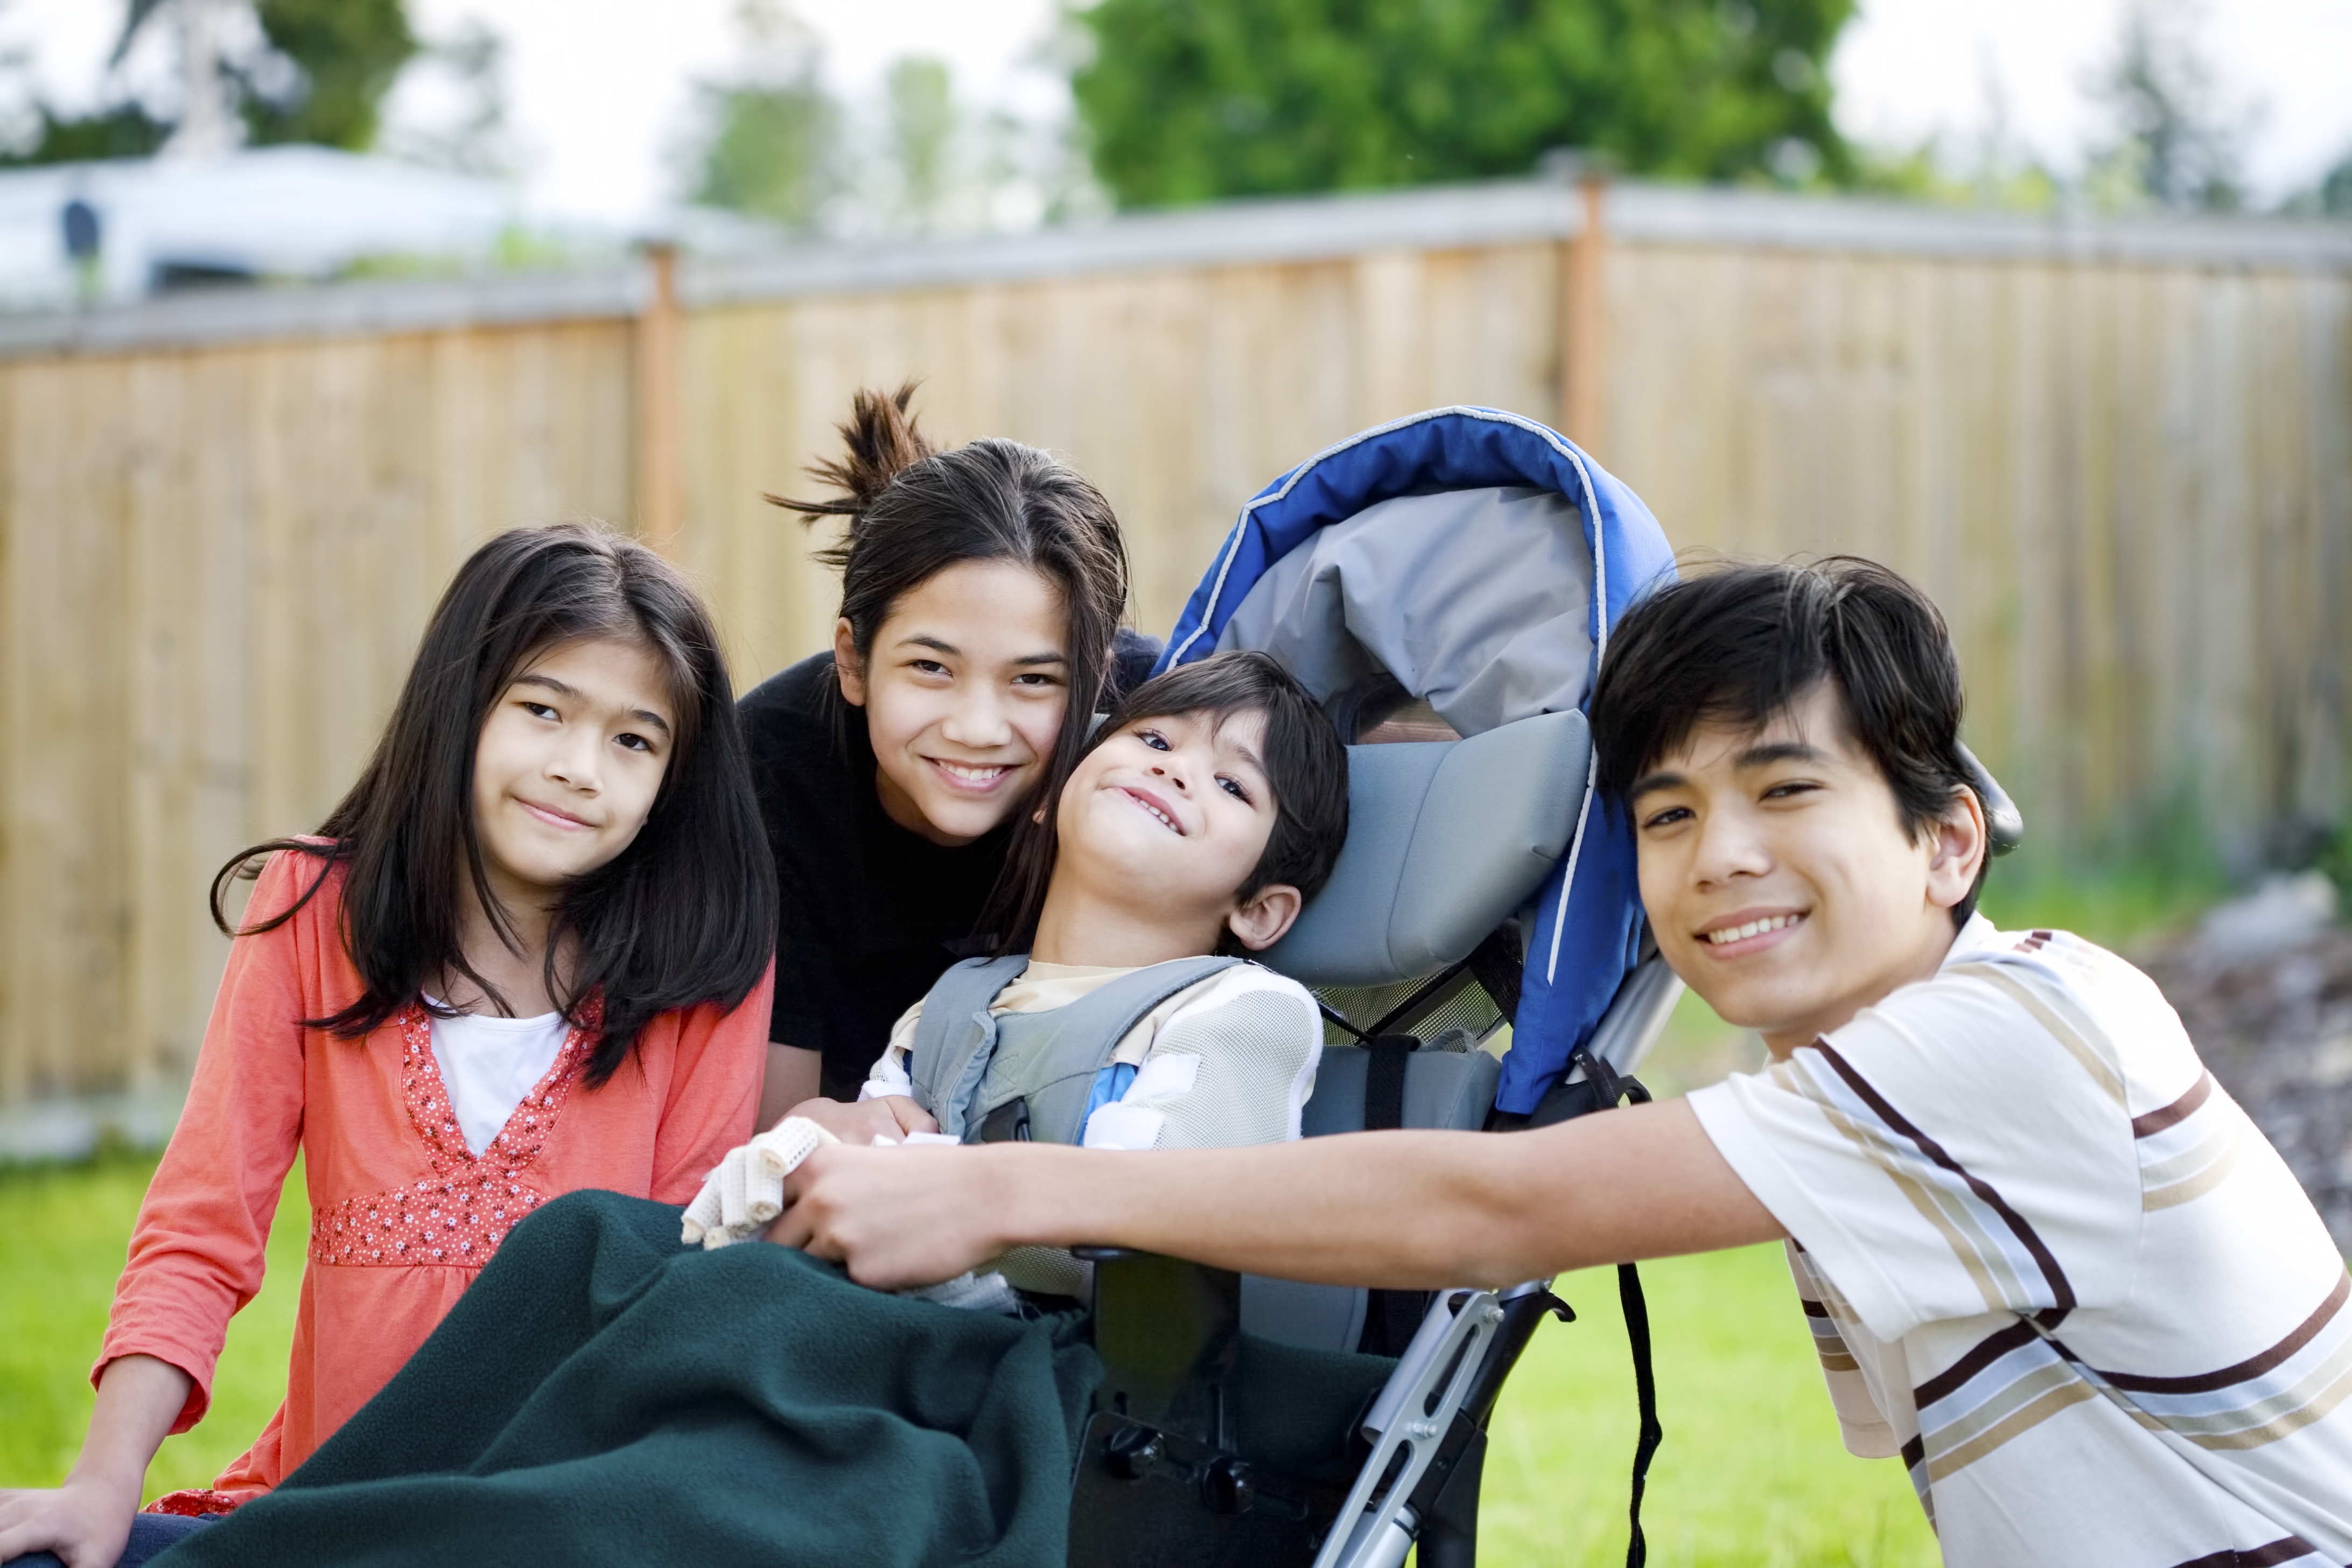 A stock photo showing a group of young caregivers with a young boy with disabilities in a pram.